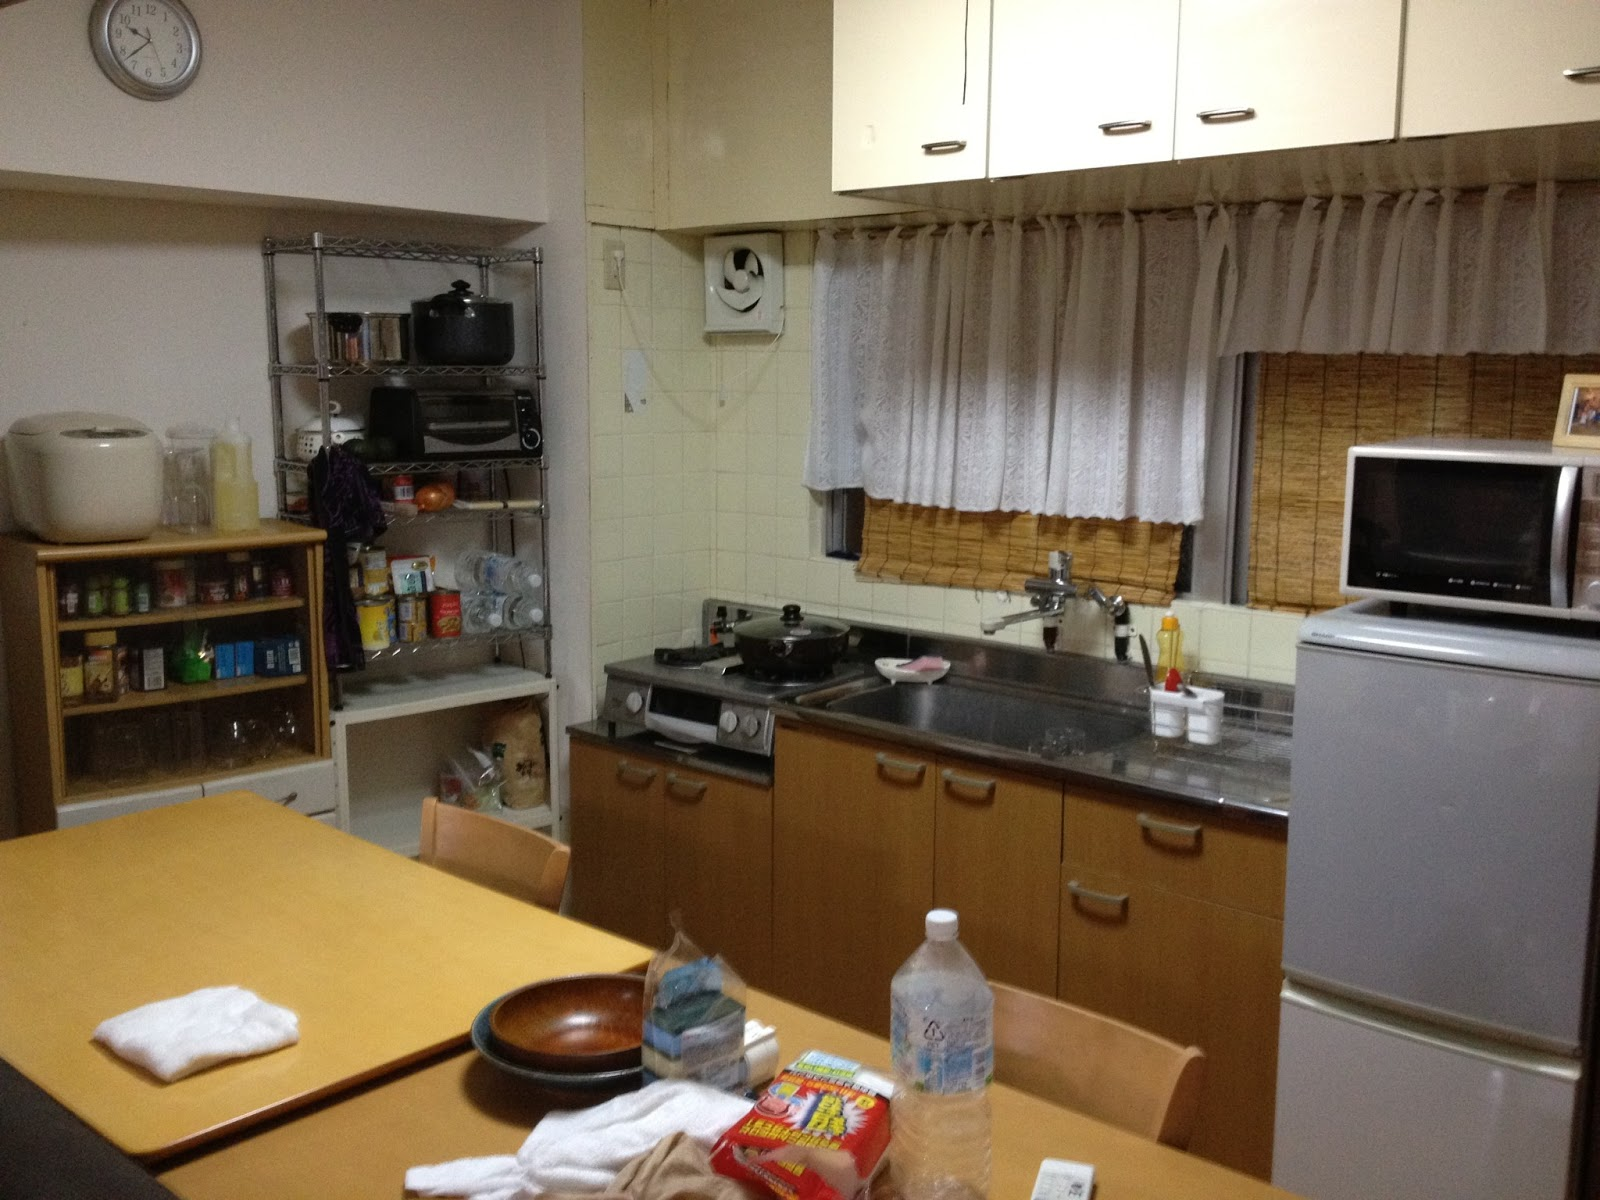 Nigel S Kitchen Comfortable Working Space And The Japanese Apartment